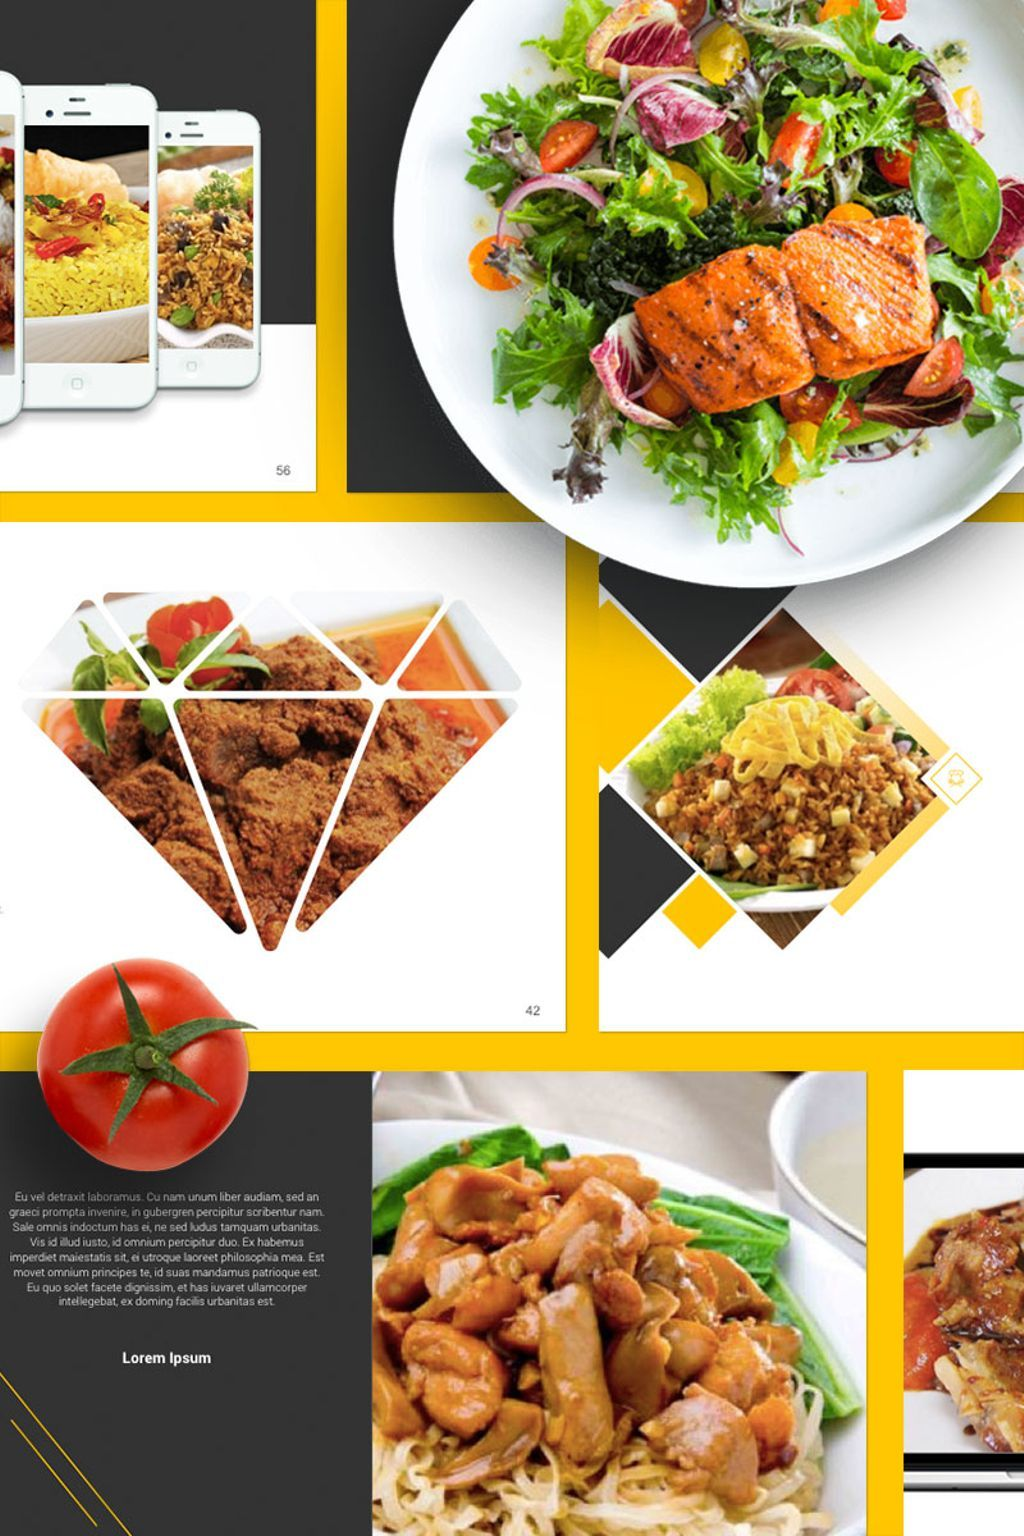 Food presentation powerpoint template powerpoint presentation food restaurant powerpoint presentation template is a modern presentation that is beautifully designed and functional forumfinder Images